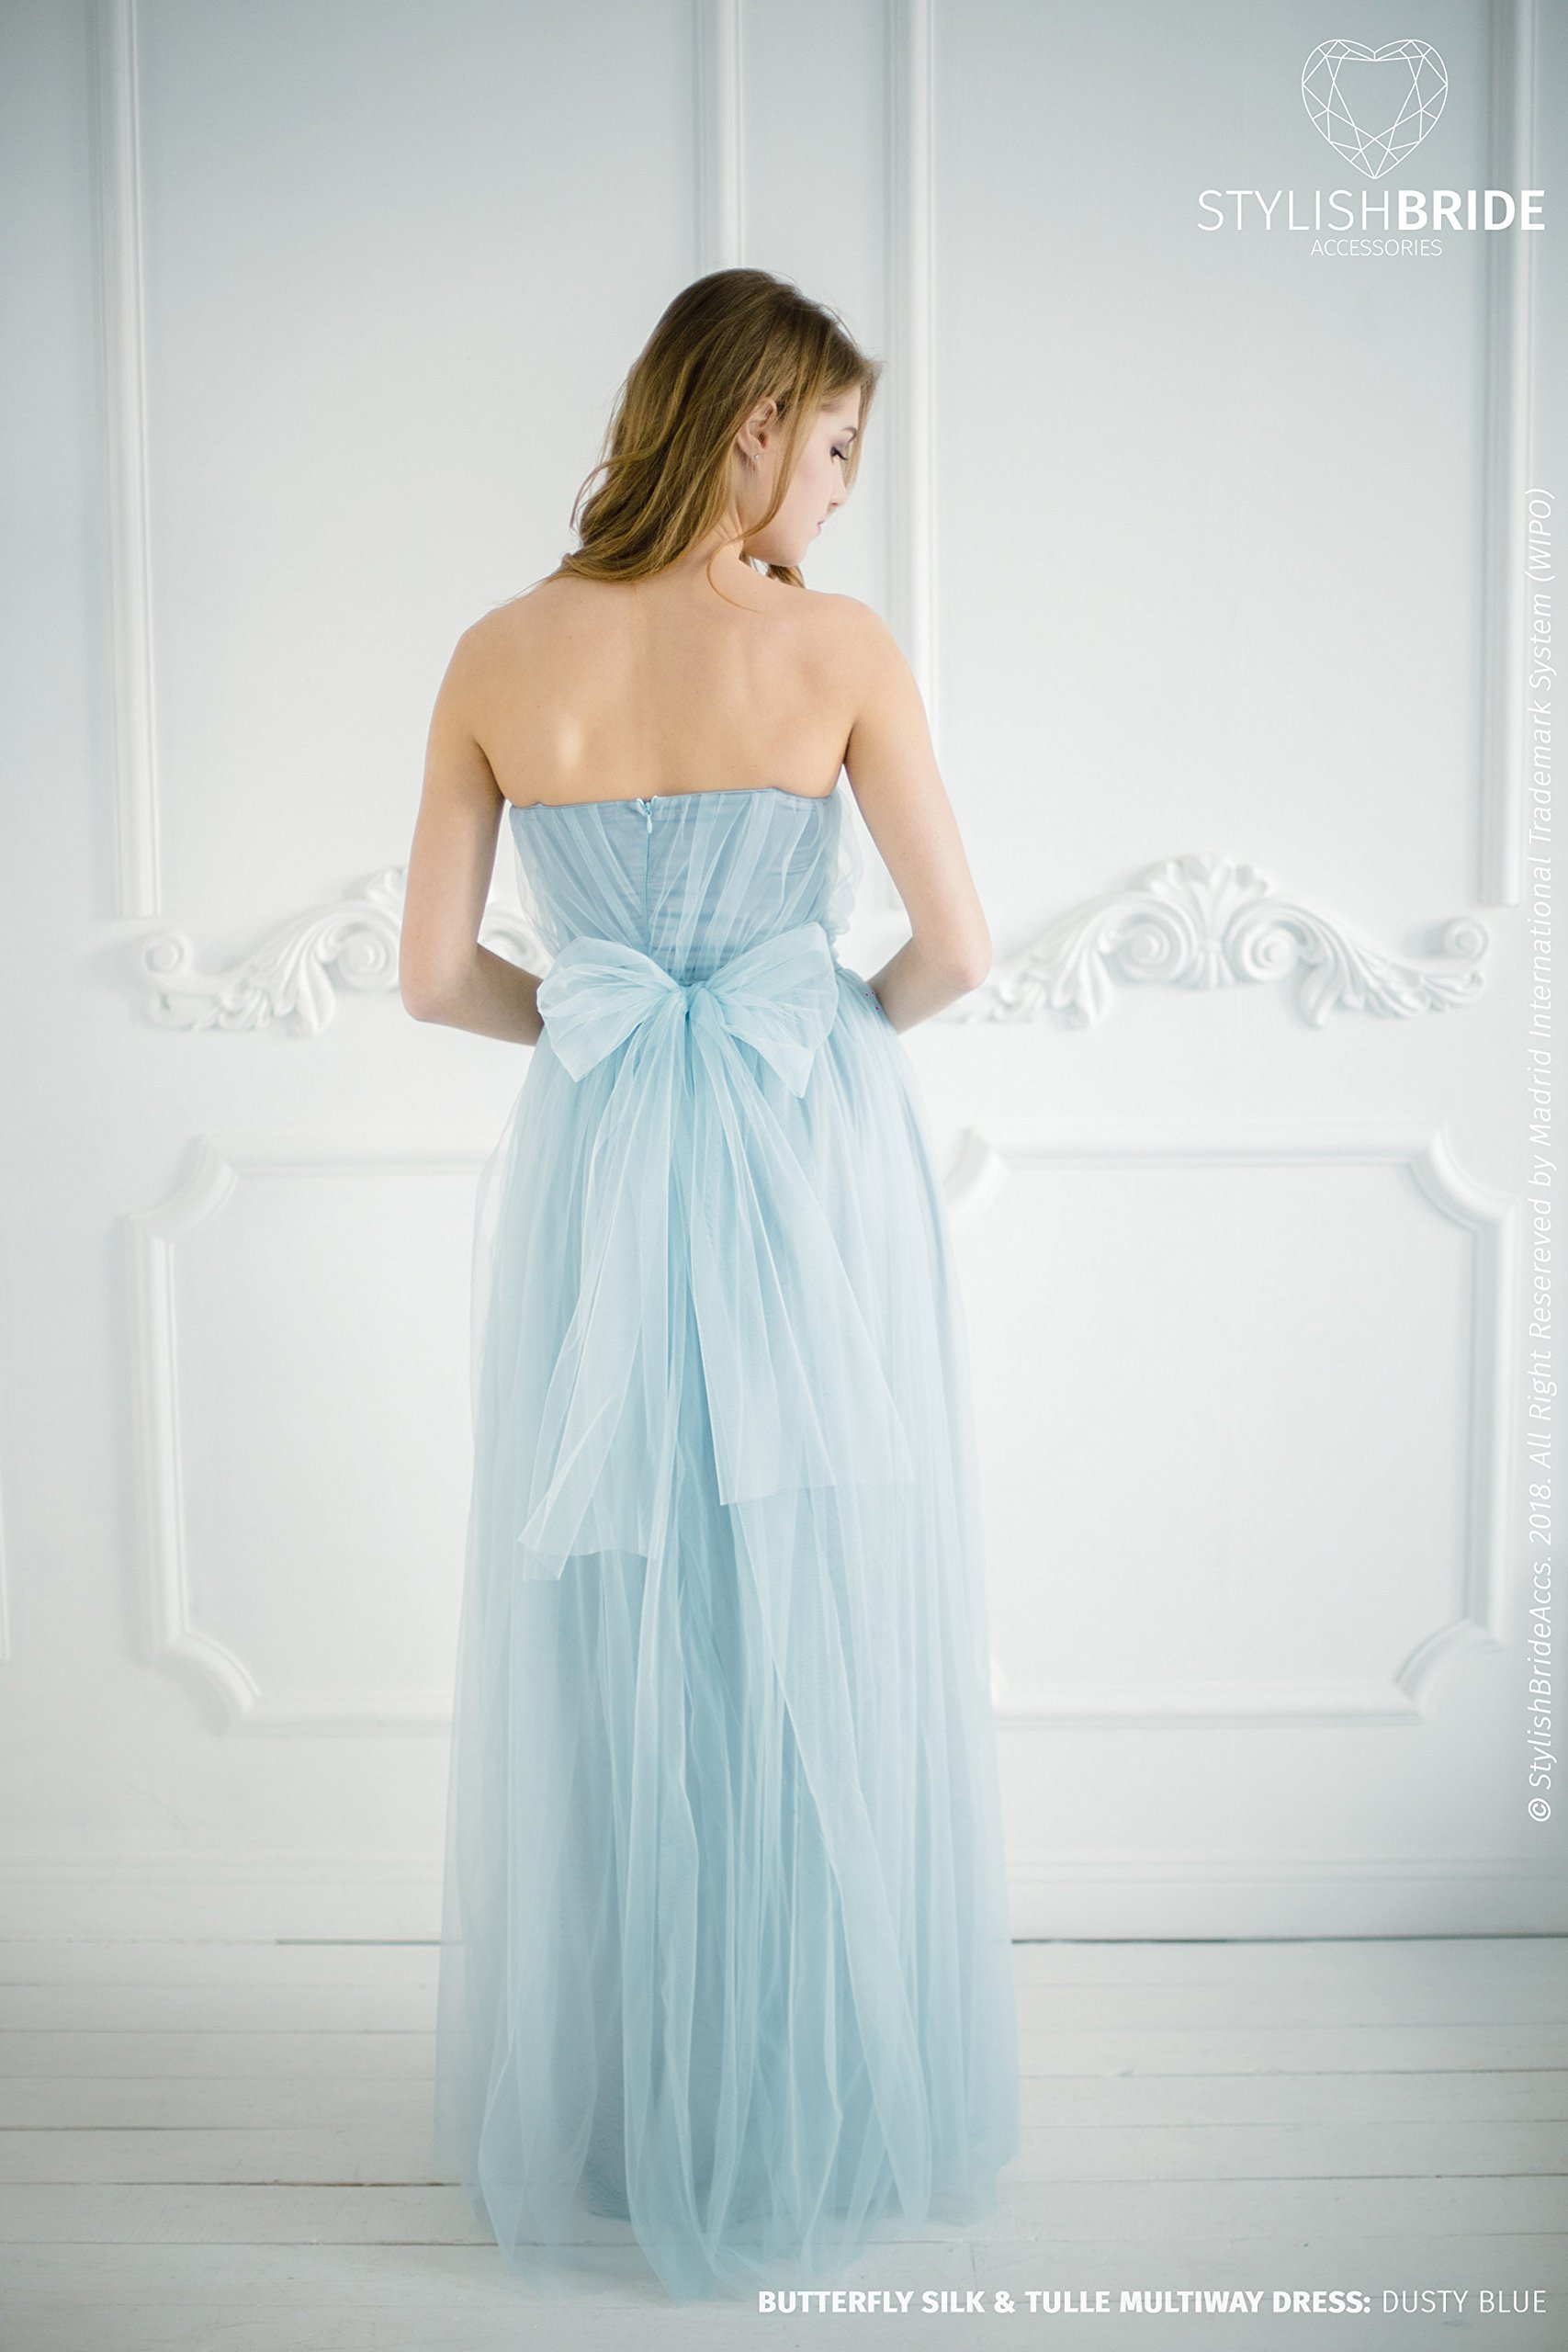 BF3 Butterfly Convertible Dusty Blue Bridesmaid Dress with bows on the waistband , Formal Dress Floor Length, Dusty Blue Wedding Dress